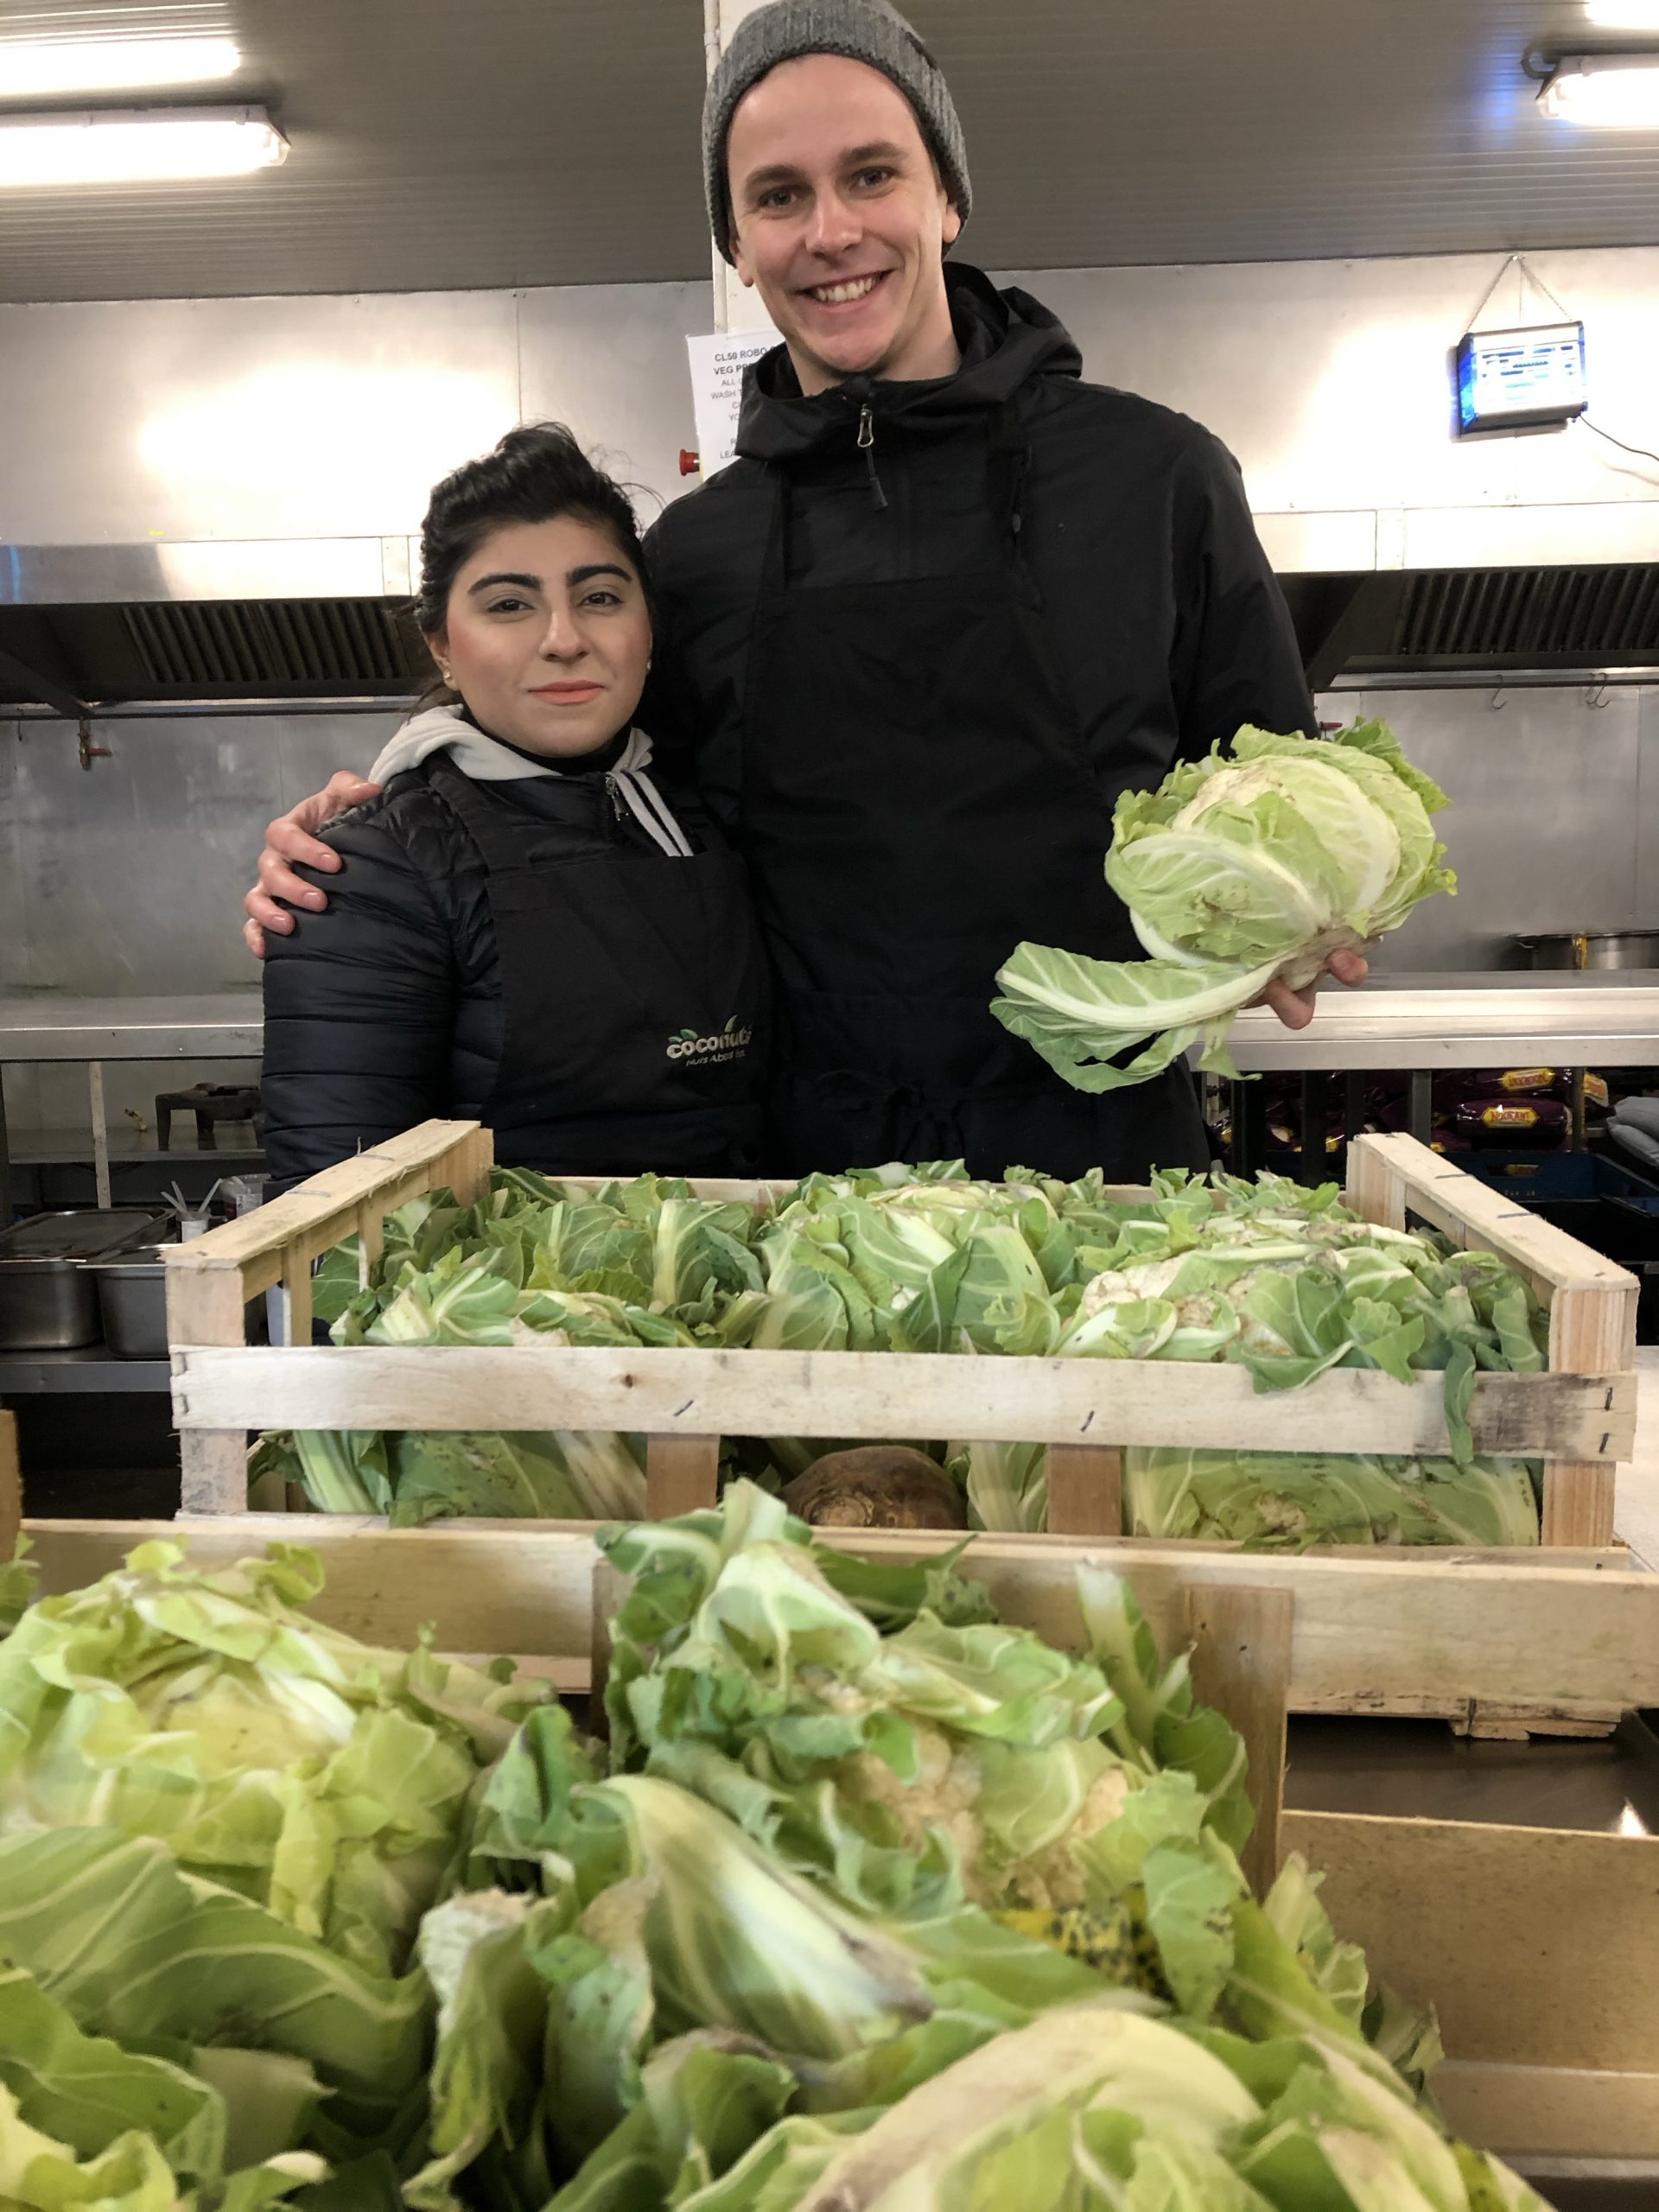 Nico stands with his peer behind boxes of lettuce in The Jungle's kitchen area holding a head of lettuce.